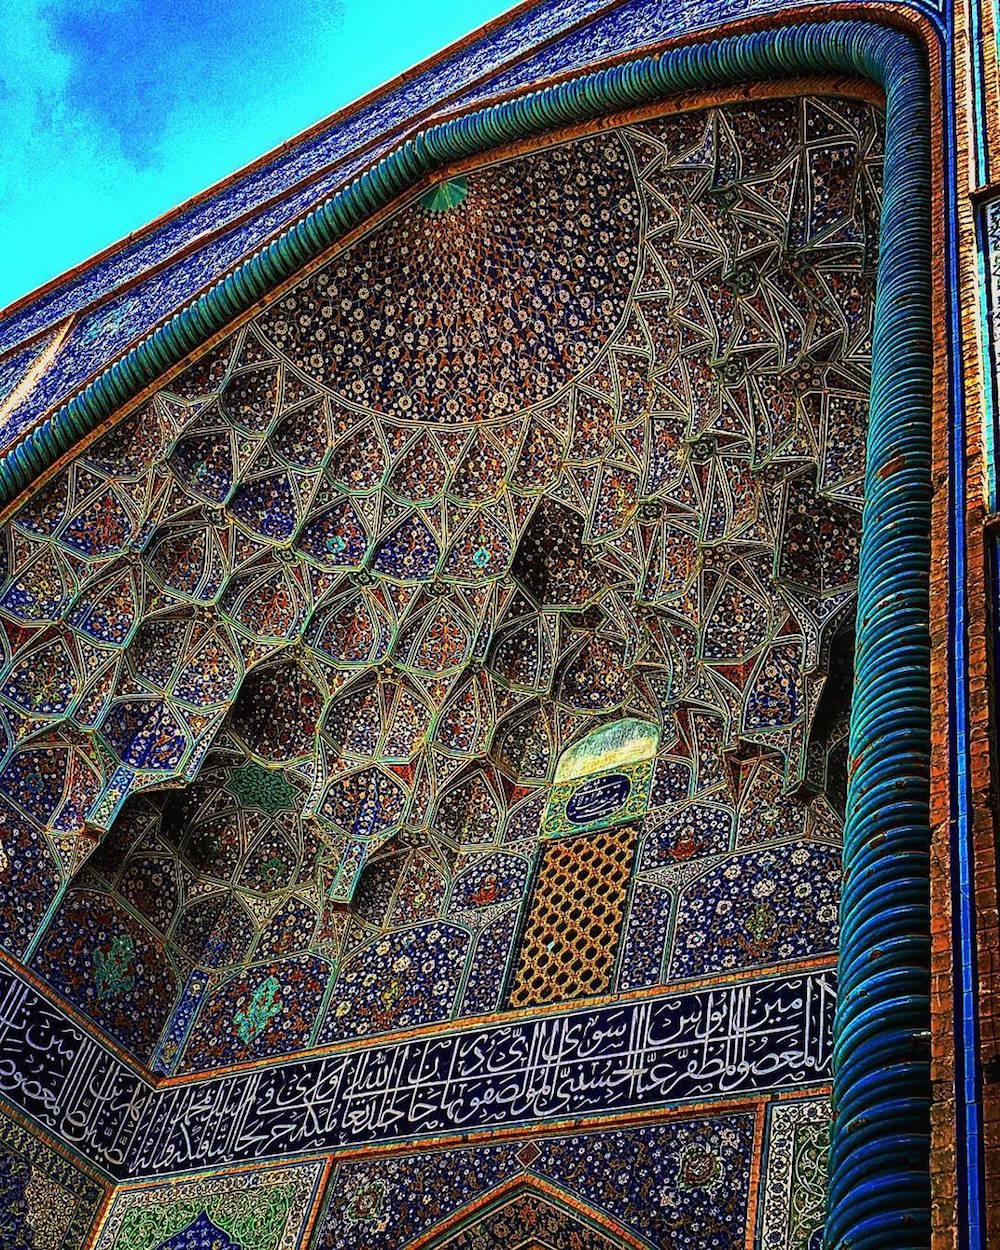 Sheikh Lotfollah mosque in Esfahan,Iran, about 400 years old